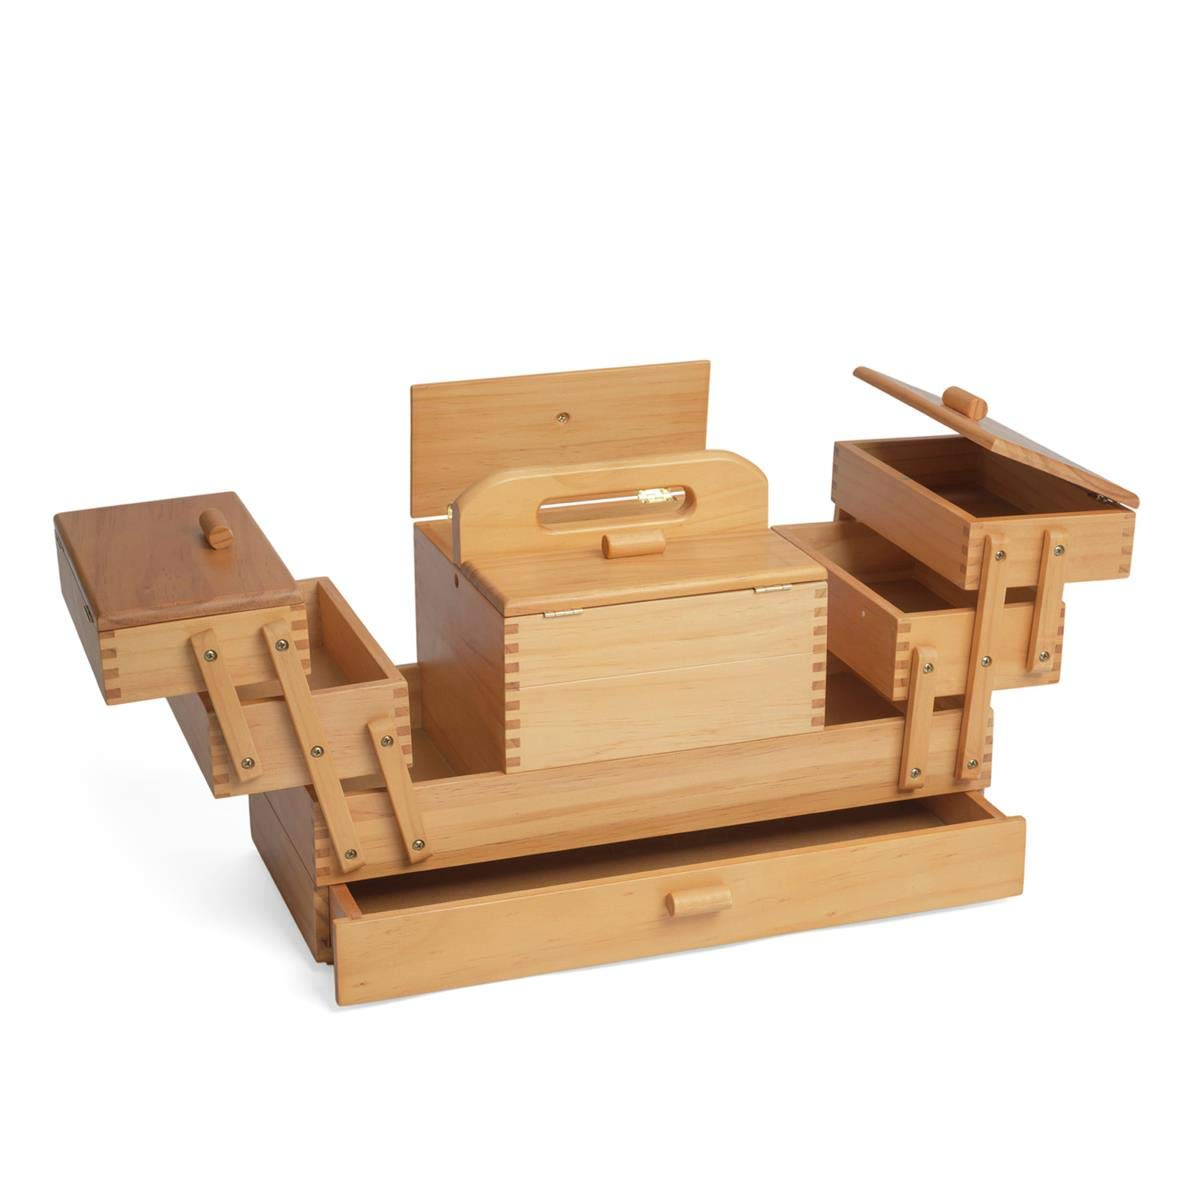 Mid-Light Shade Wood Hobbygift Wooden Cantilever 3 Tier Sewing Box 73x25x25 cm